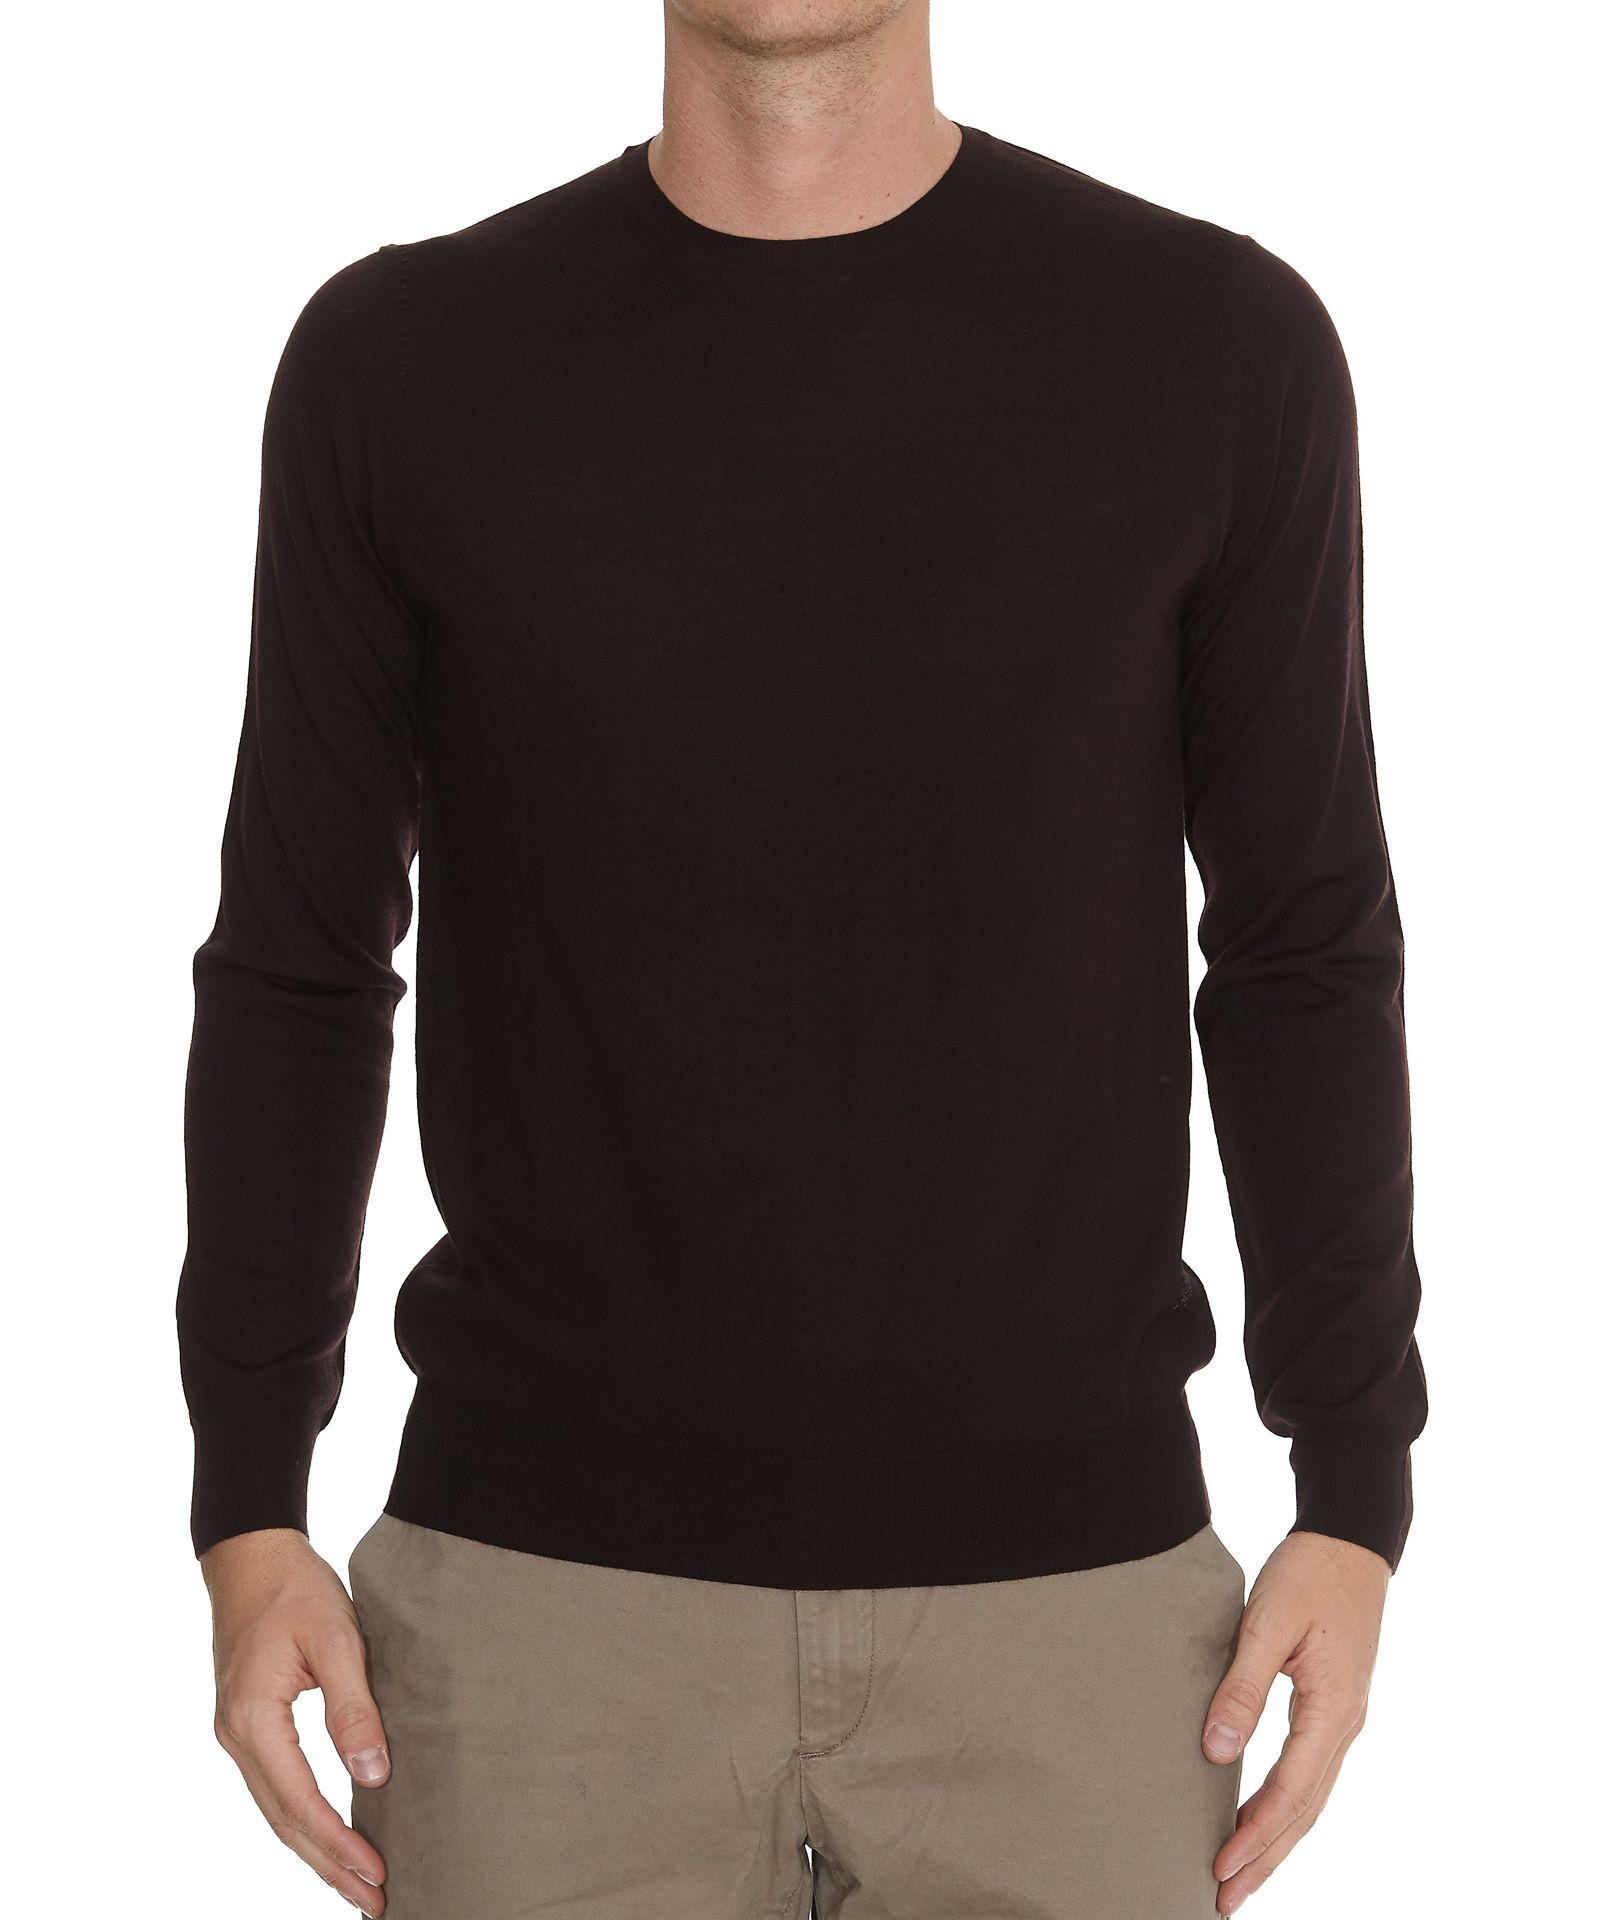 HŌSIO Crew Neck Sweater in Bordeaux